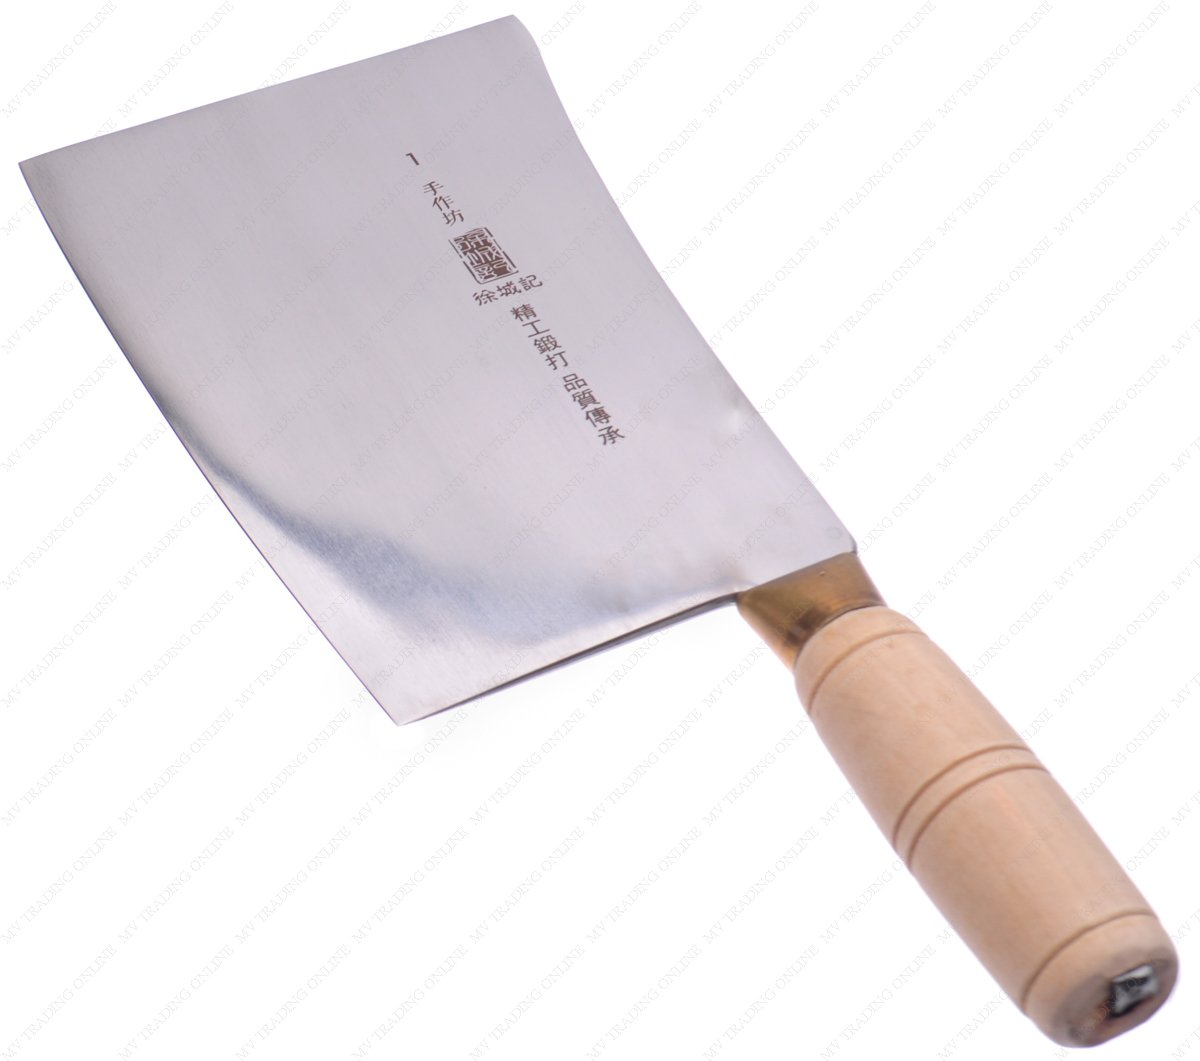 M.V. Trading Commerical Heavy Duty Stainless Steel Butcher Slicing Cleaver with Wooden Handle, Blade Size: 7-3/8 Inch (L) x 4-7/8 Inch (W) | Overall with Handle: 11-3/4 Inch (L)